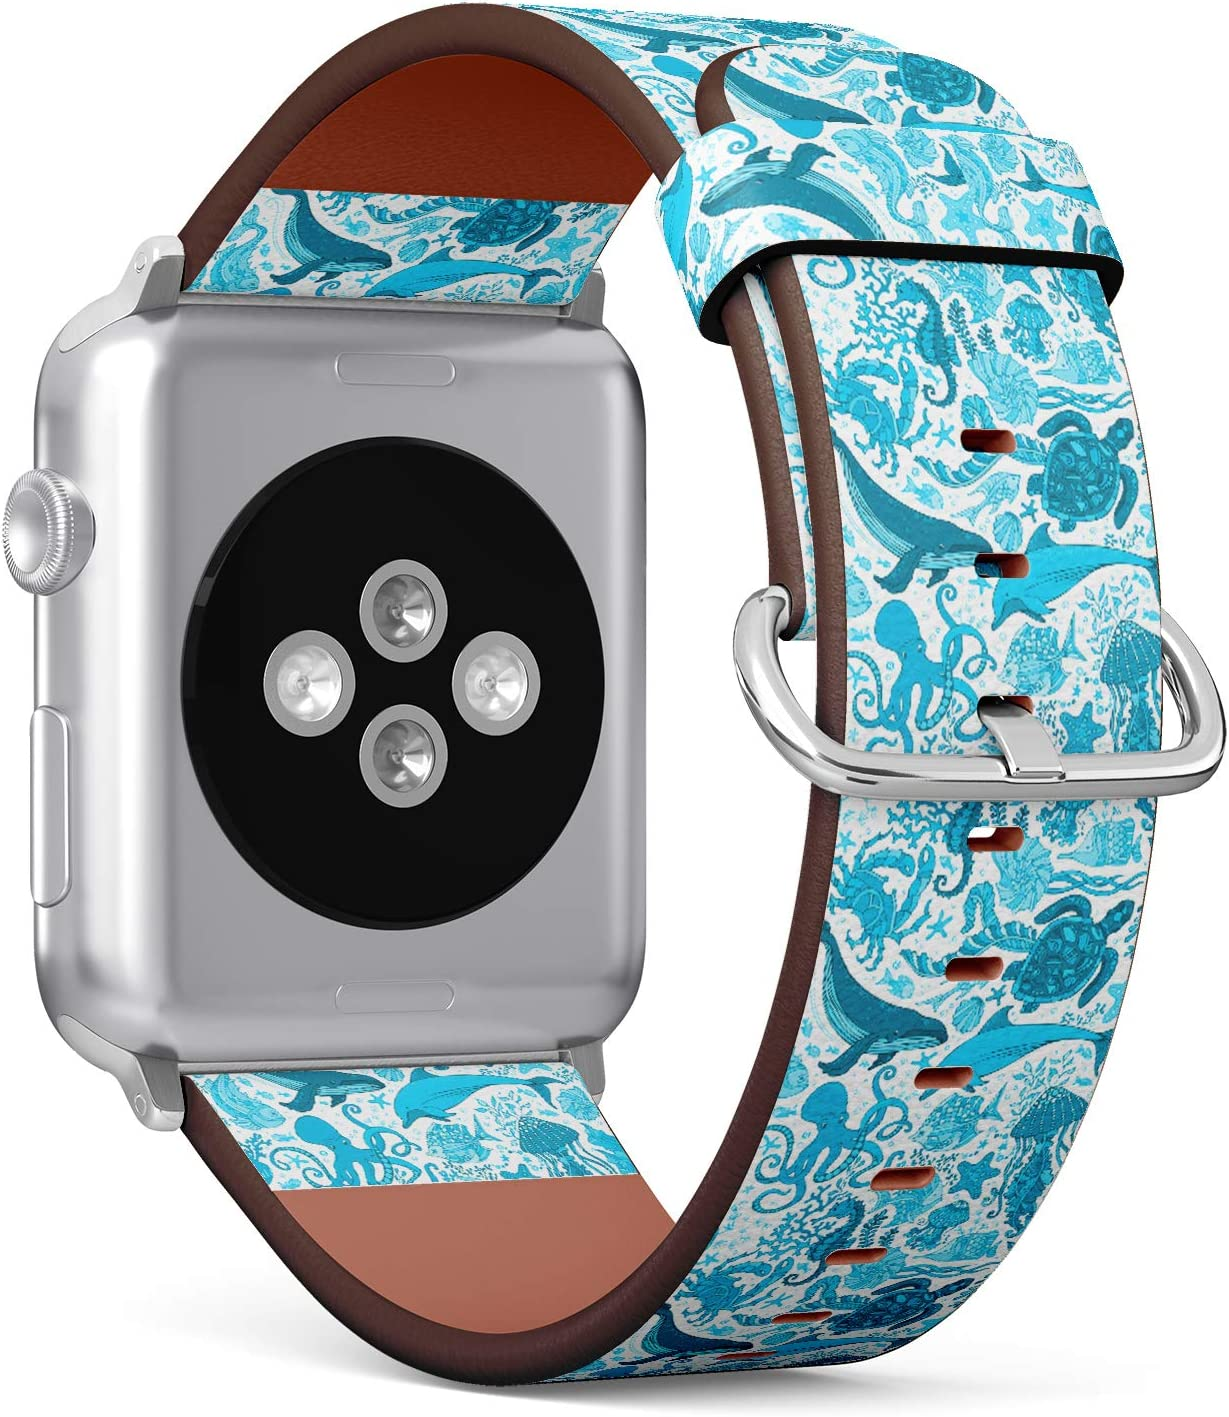 S-Type iWatch Leather Strap Printing Wristbands for Apple Watch 4/3/2/1 Sport Series (38mm) - ?Ocean Underwater Whale, Dolphin, Turtle, Starfish, Crab, Octopus Pattern